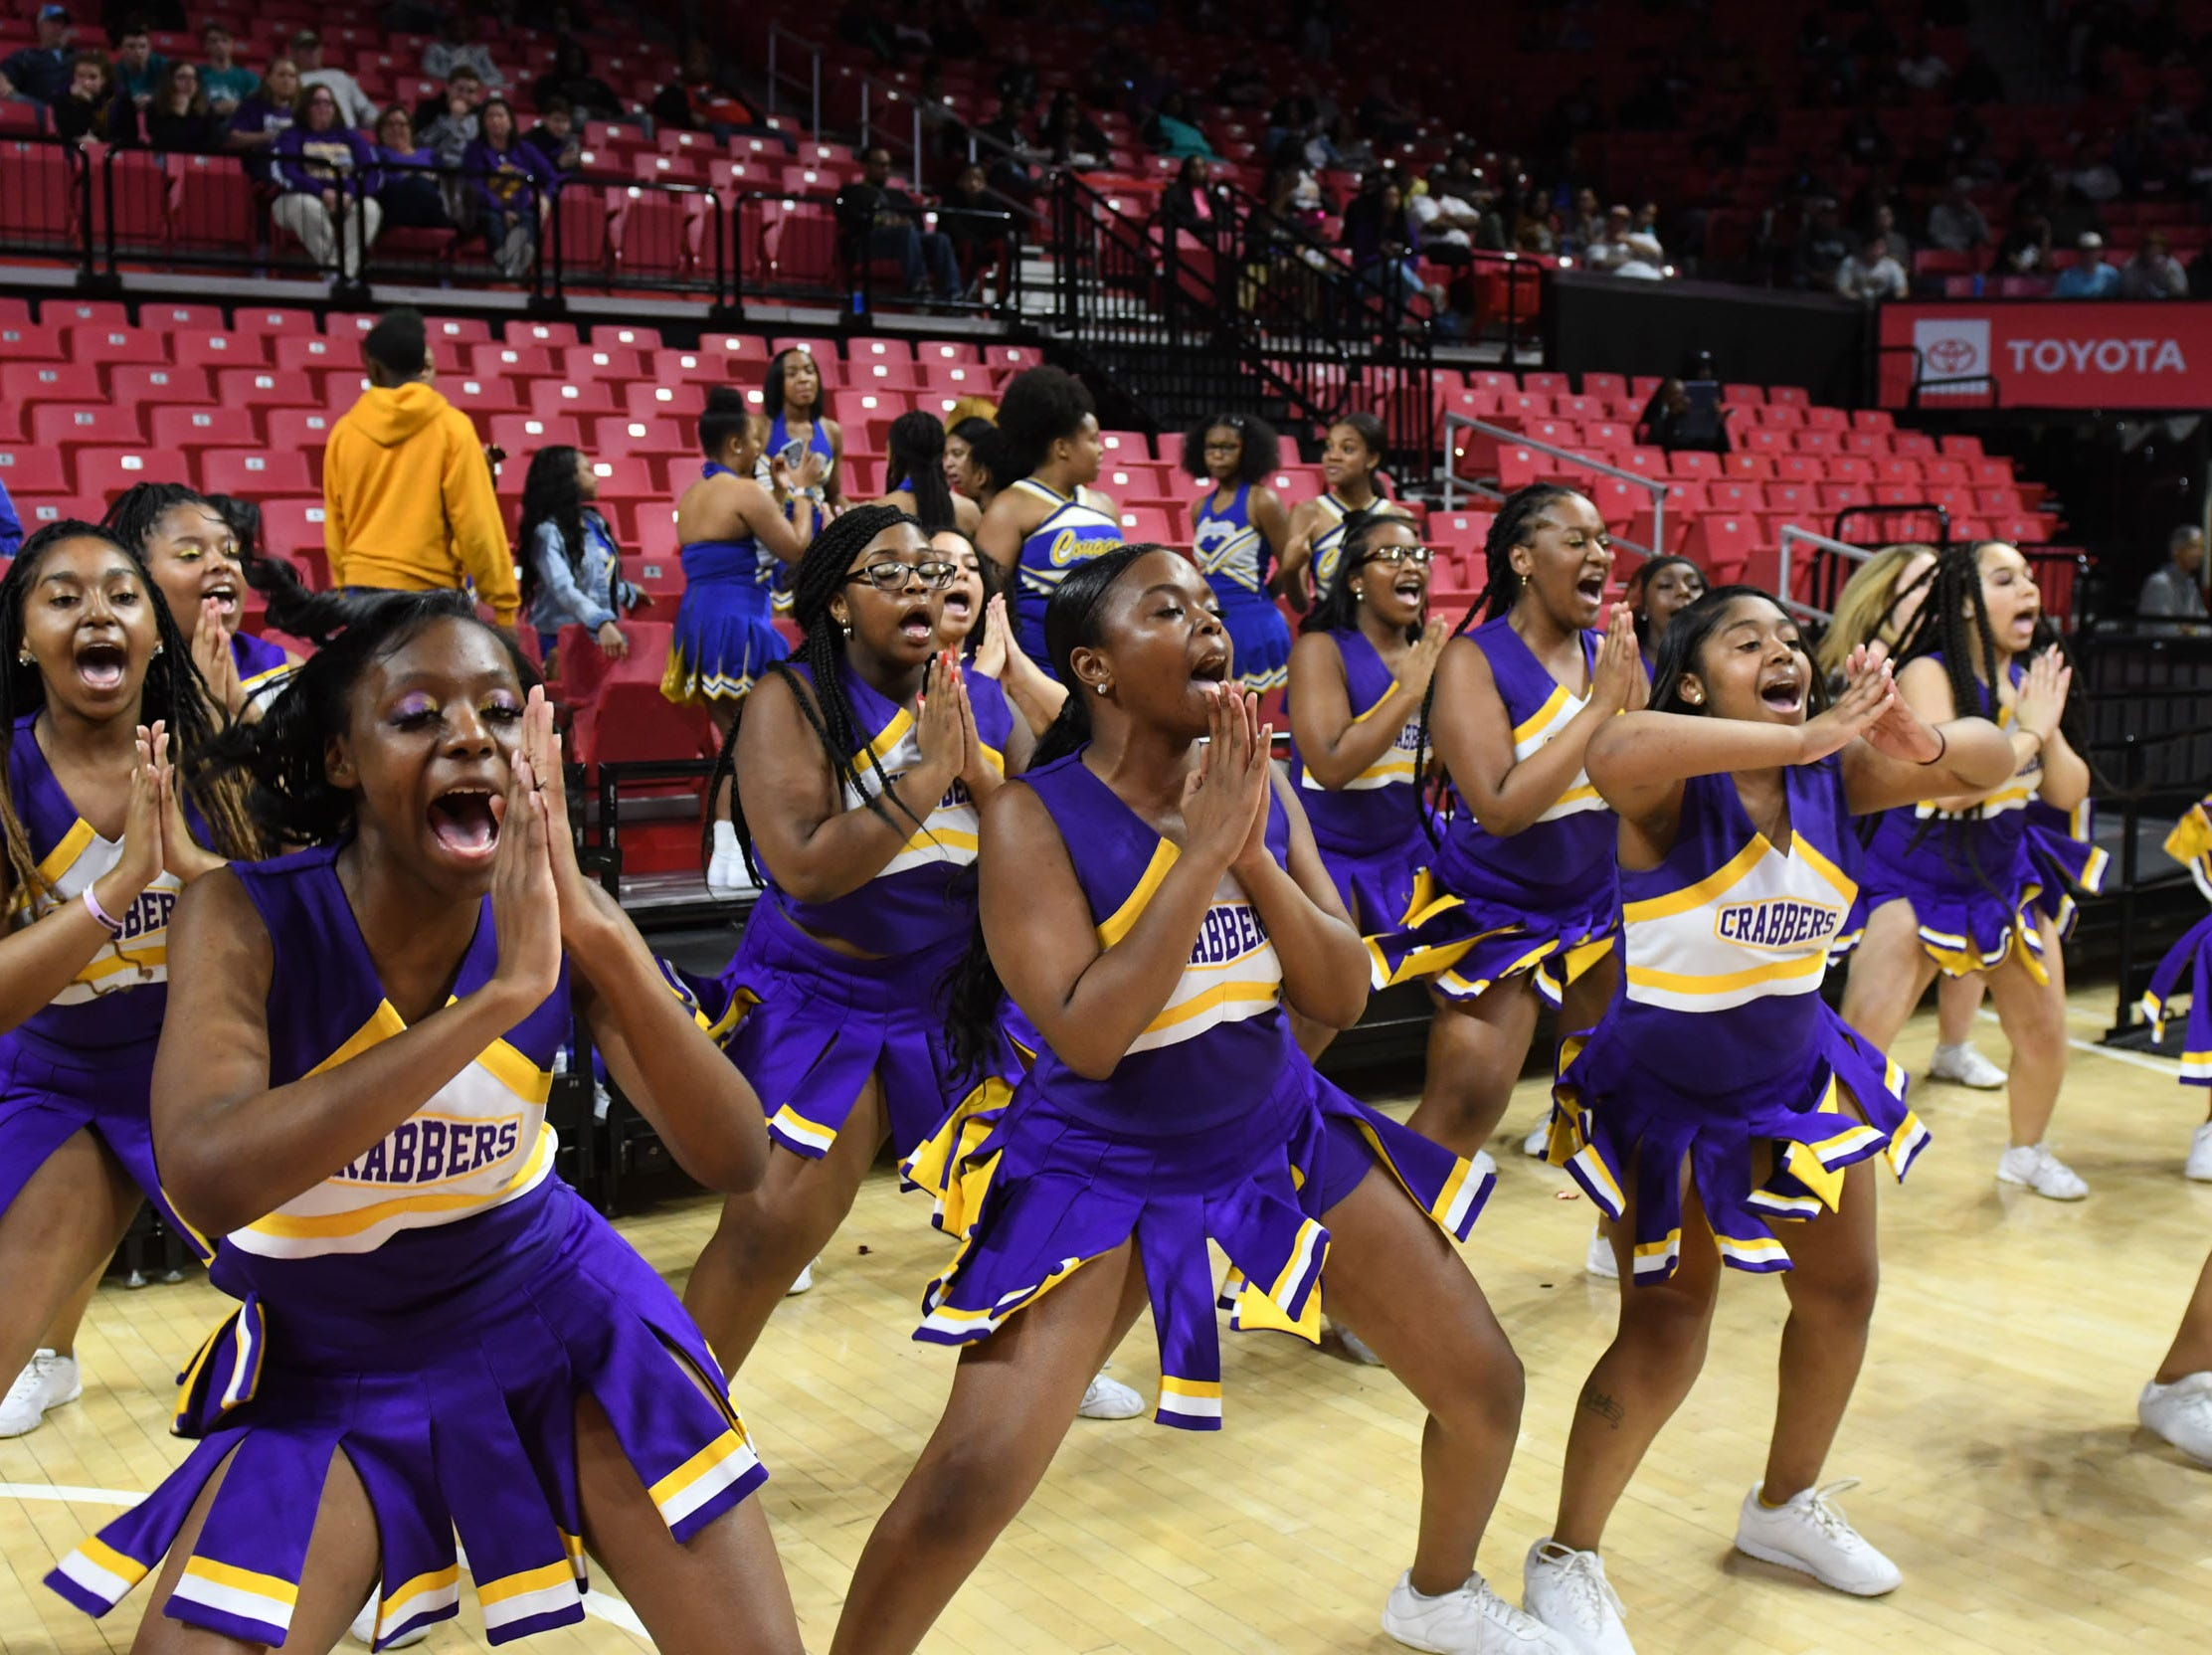 Crisfield's cheerleaders during the MPSSAA State Championships at the Xfinity Center in College Park, Md. on Friday, March 15, 2019.